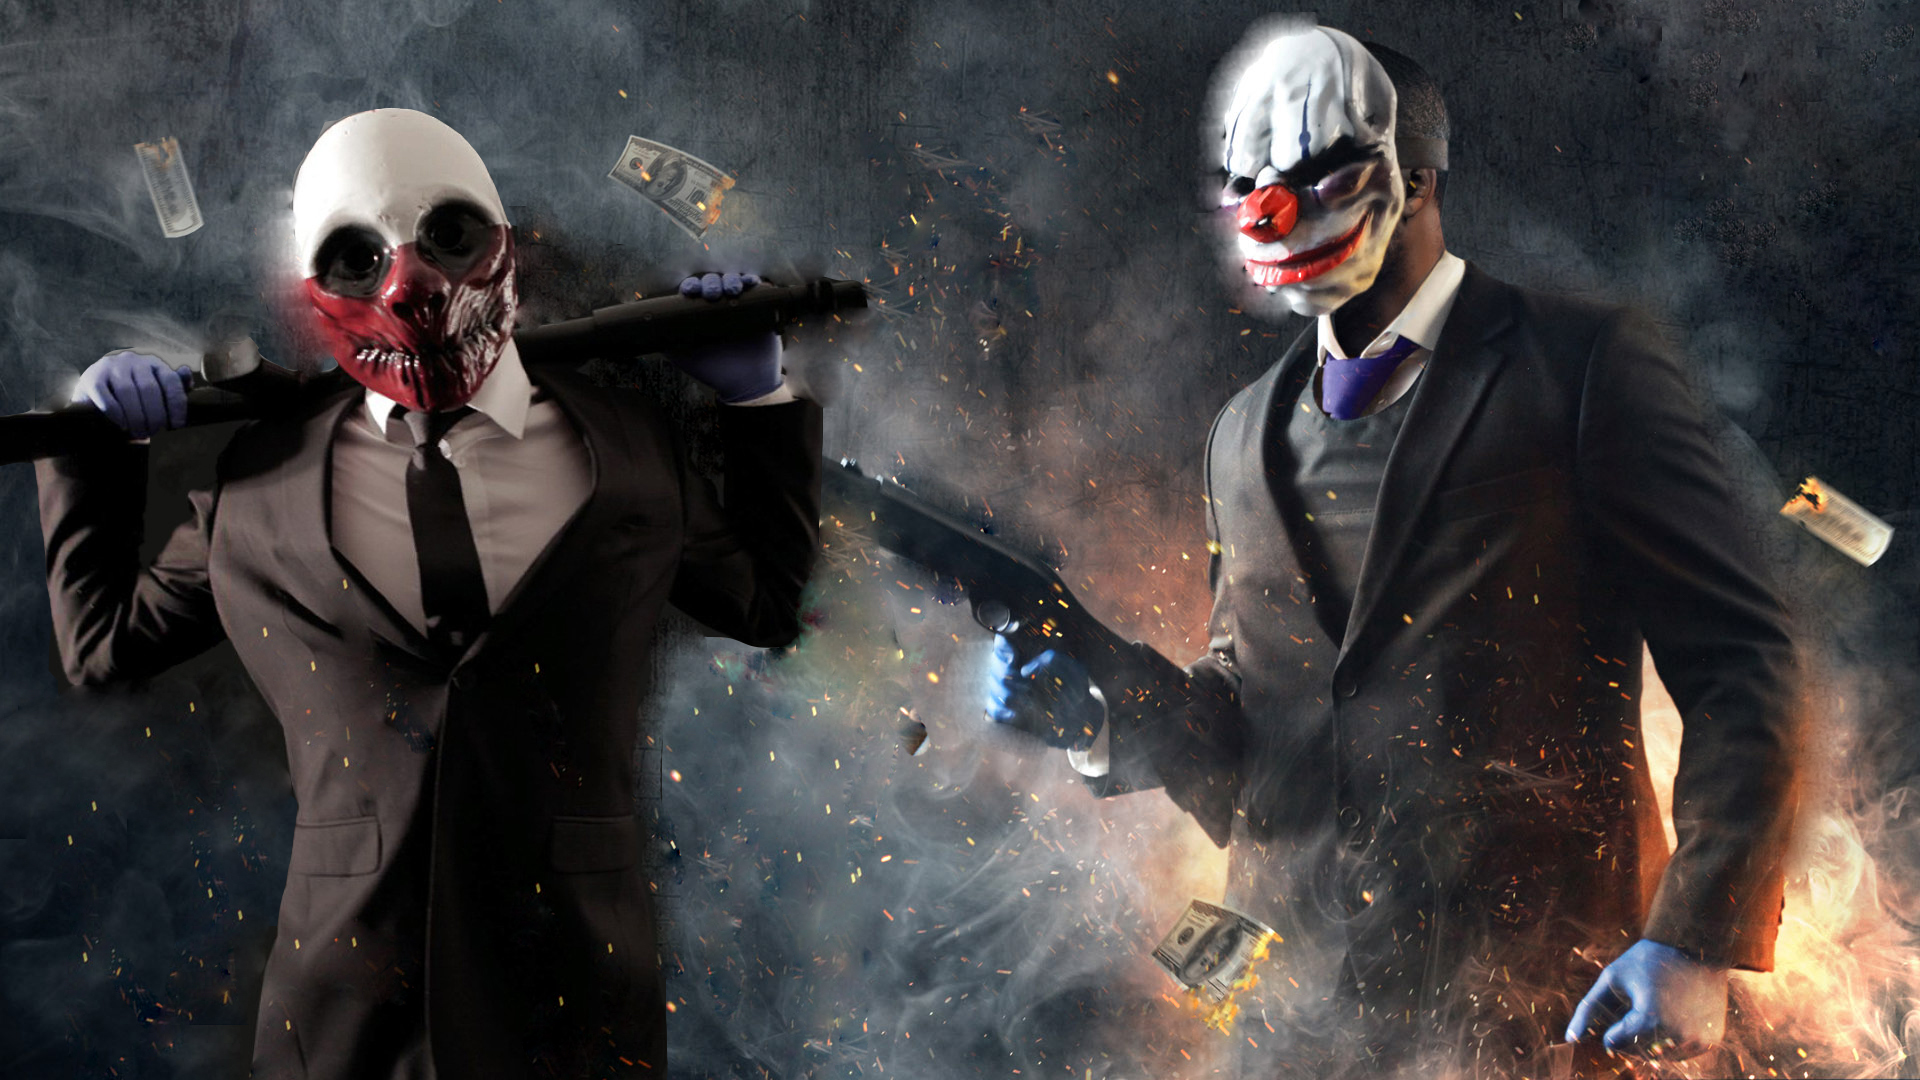 payday_2_chains_and_wolf_custom_wallpaper_by_davecreator-d846n3j.jpg